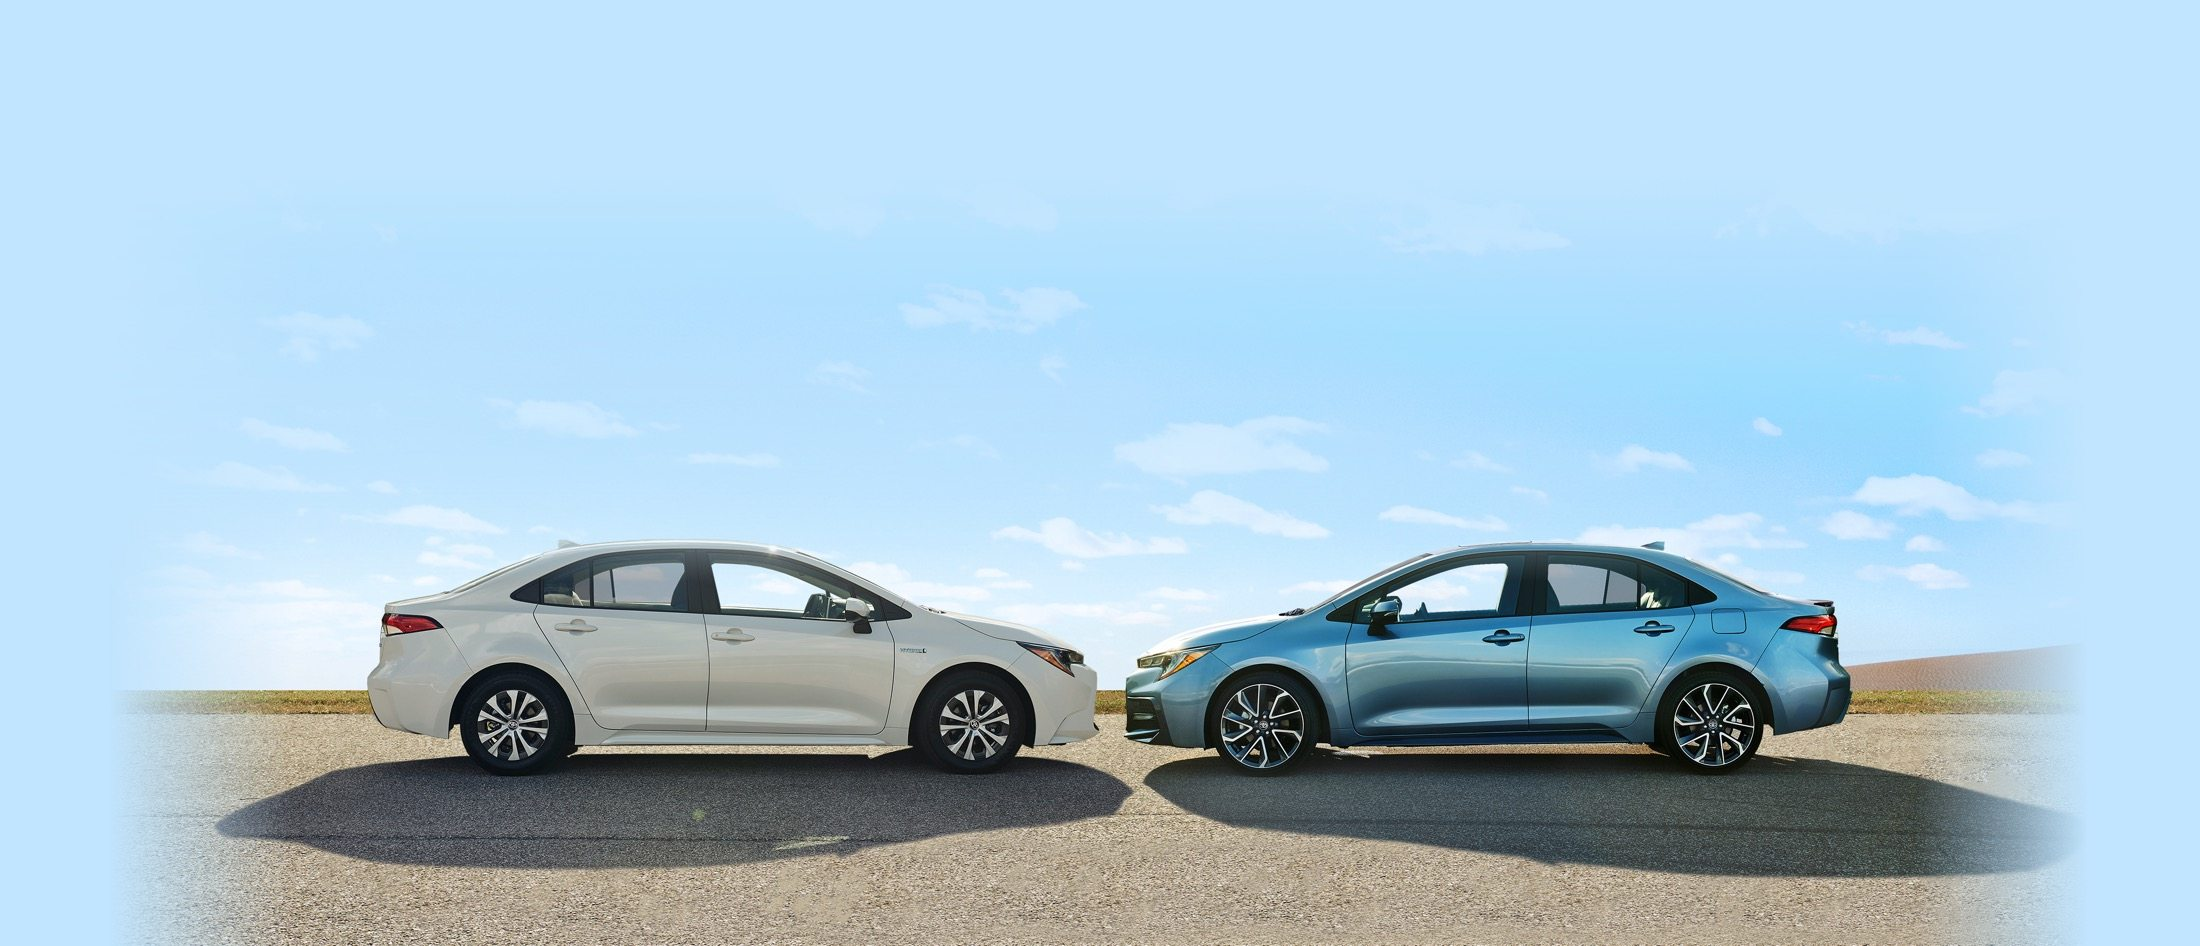 toyota-register-for-updates-2020-corolla-features-l